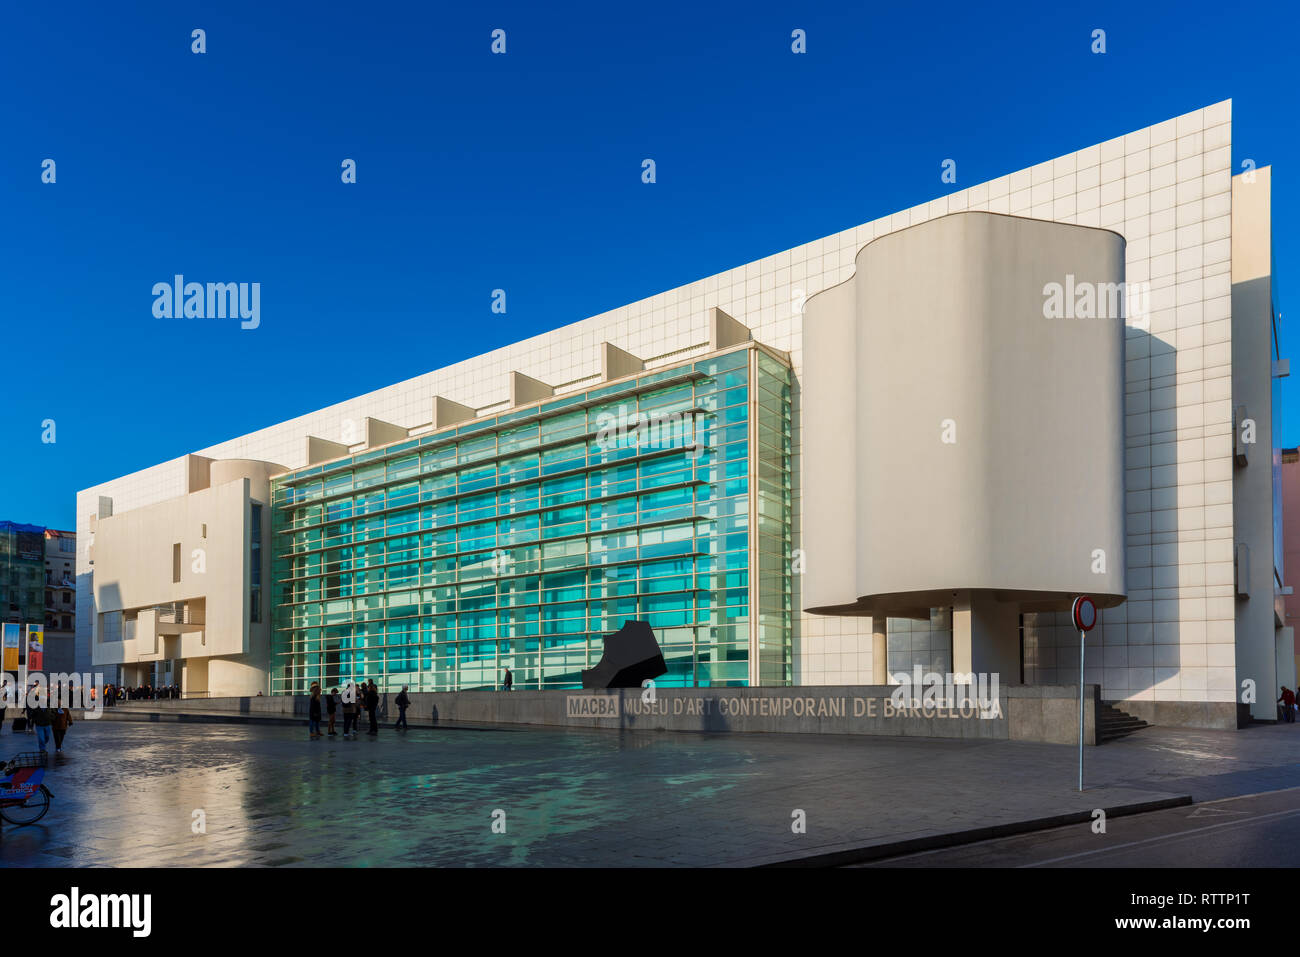 Barcelona Museum of Contemporary Art (MACBA) in Barcelona Spain. The museum opened in 1995 and focuses mainly on post-1945 Catalan and Spanish art. - Stock Image